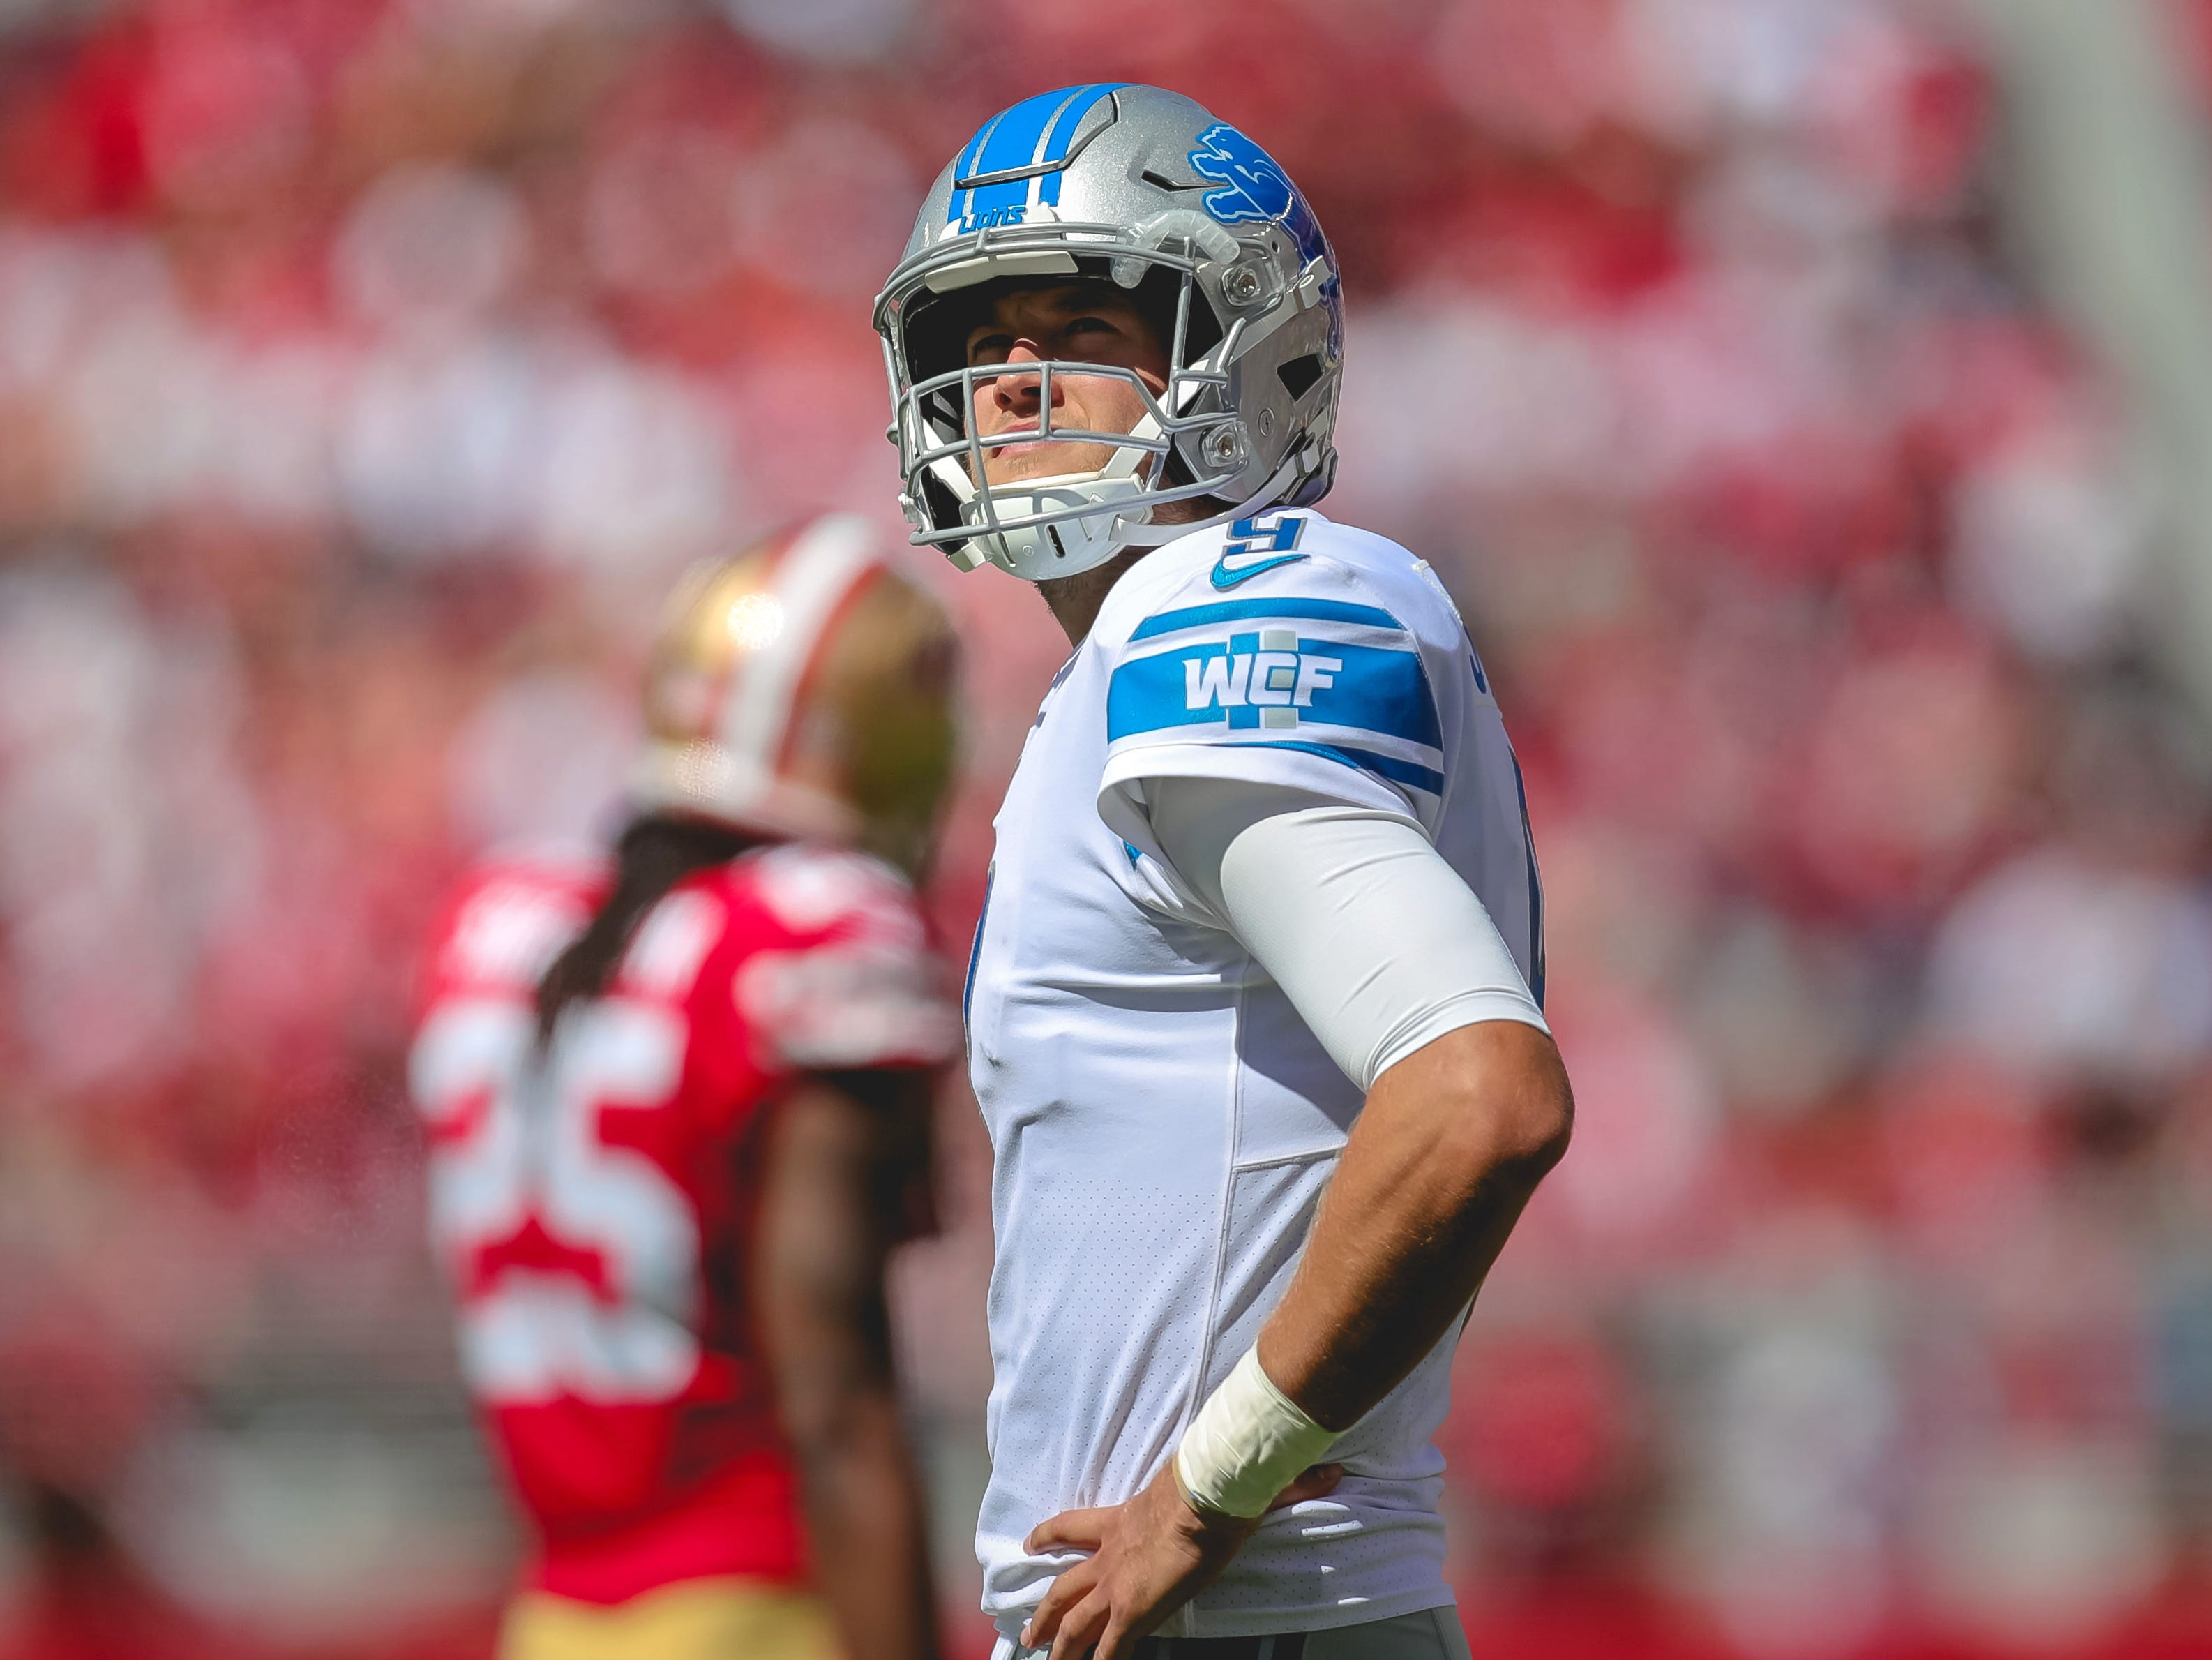 Detroit Lions quarterback Matthew Stafford looks on during the second quarter against the San Francisco 49ers at Levi's Stadium.